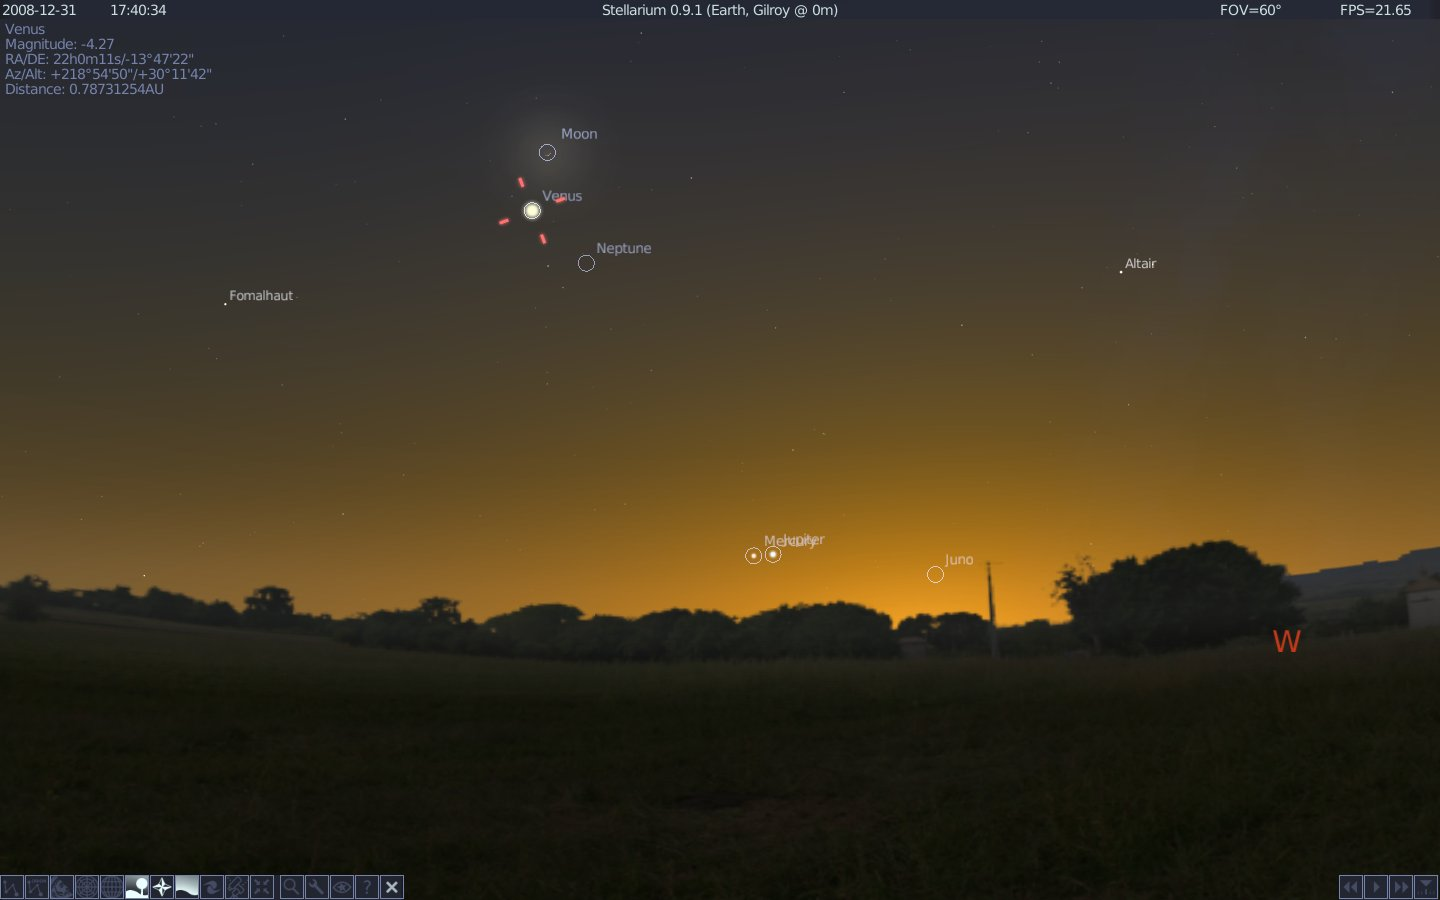 visible planets tonight november 25 - photo #29